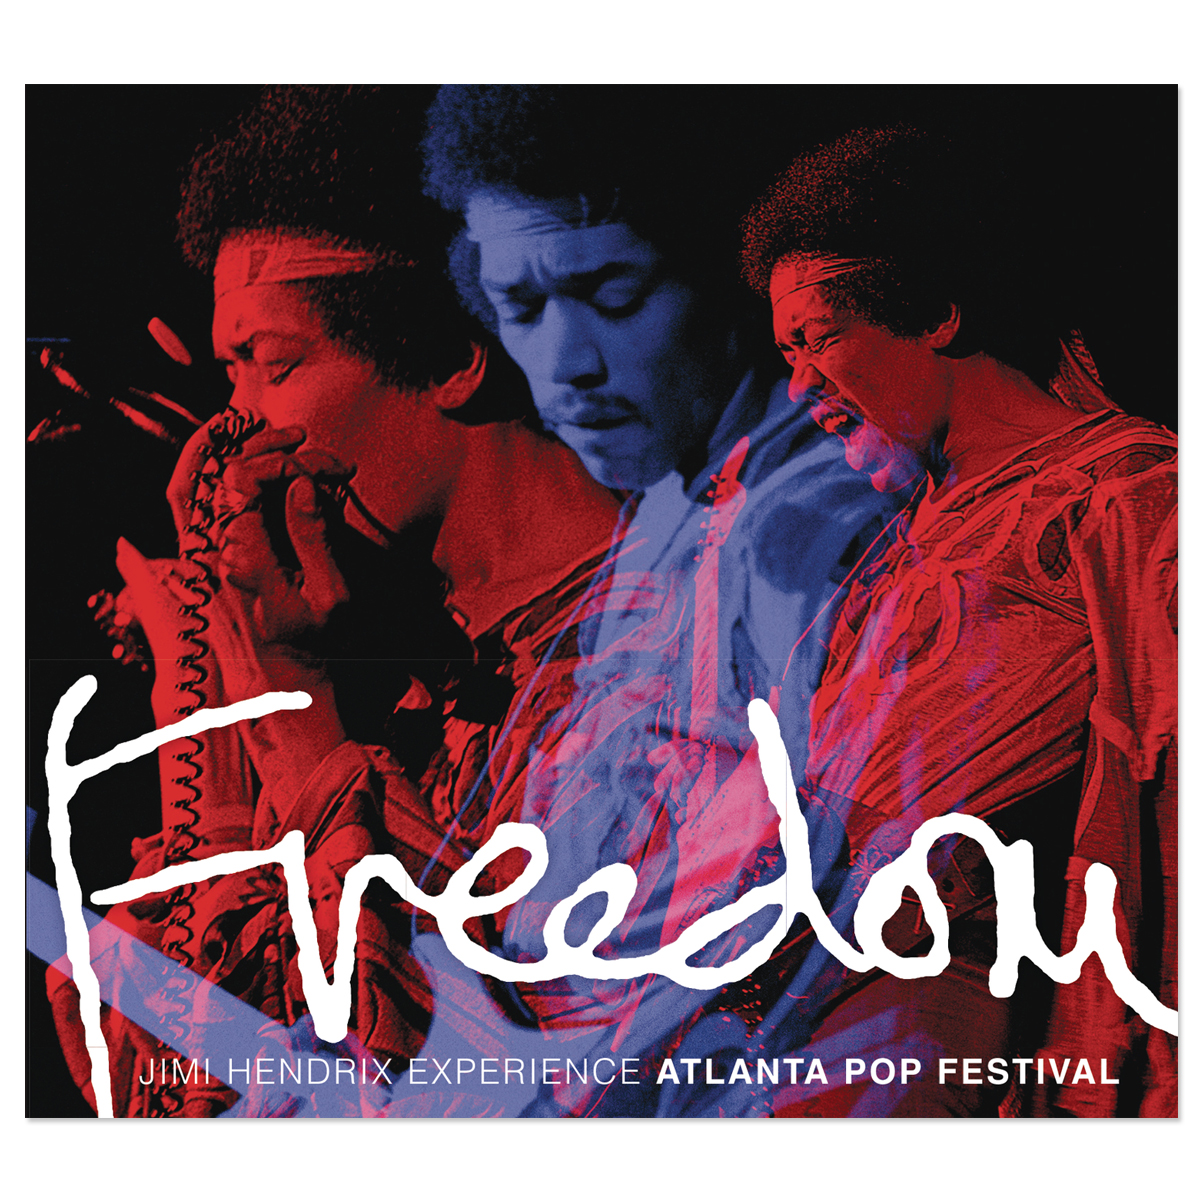 The Jimi Hendrix Experience Freedom: Atlanta Pop Festival